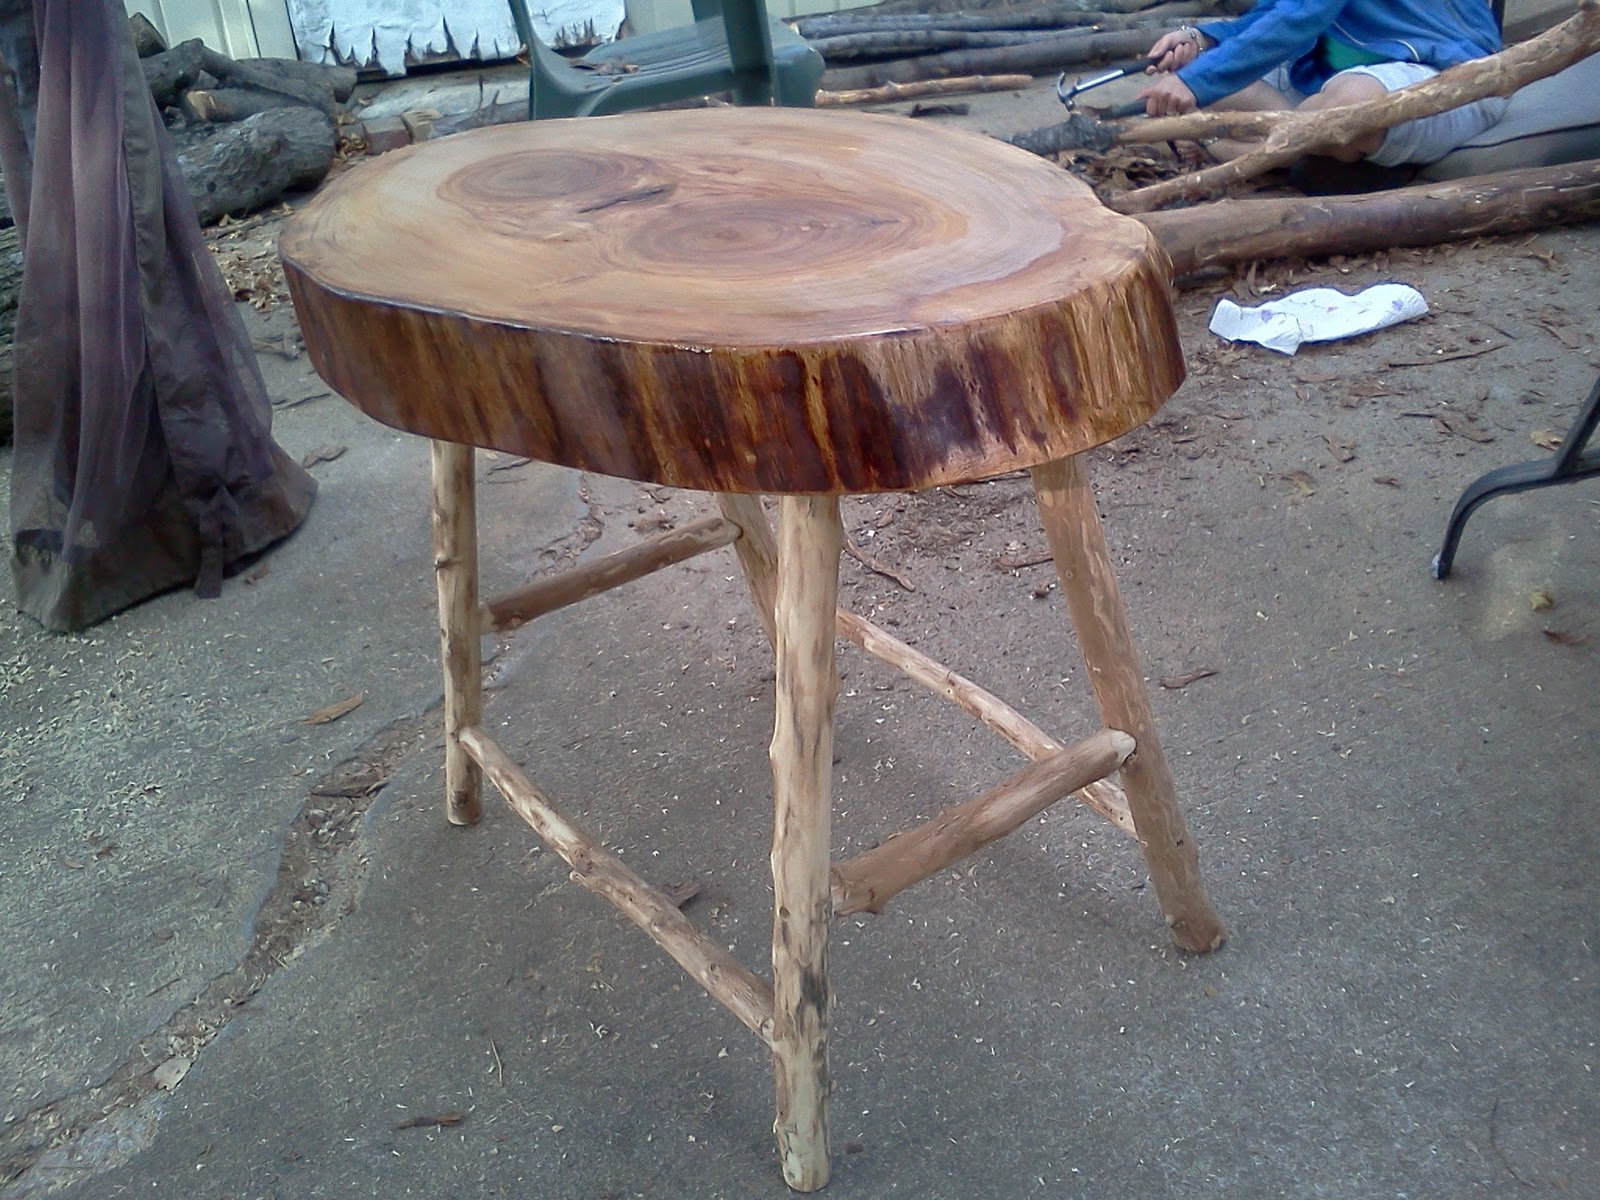 Handmade rustic log furniture projects already completed for Homemade log bench